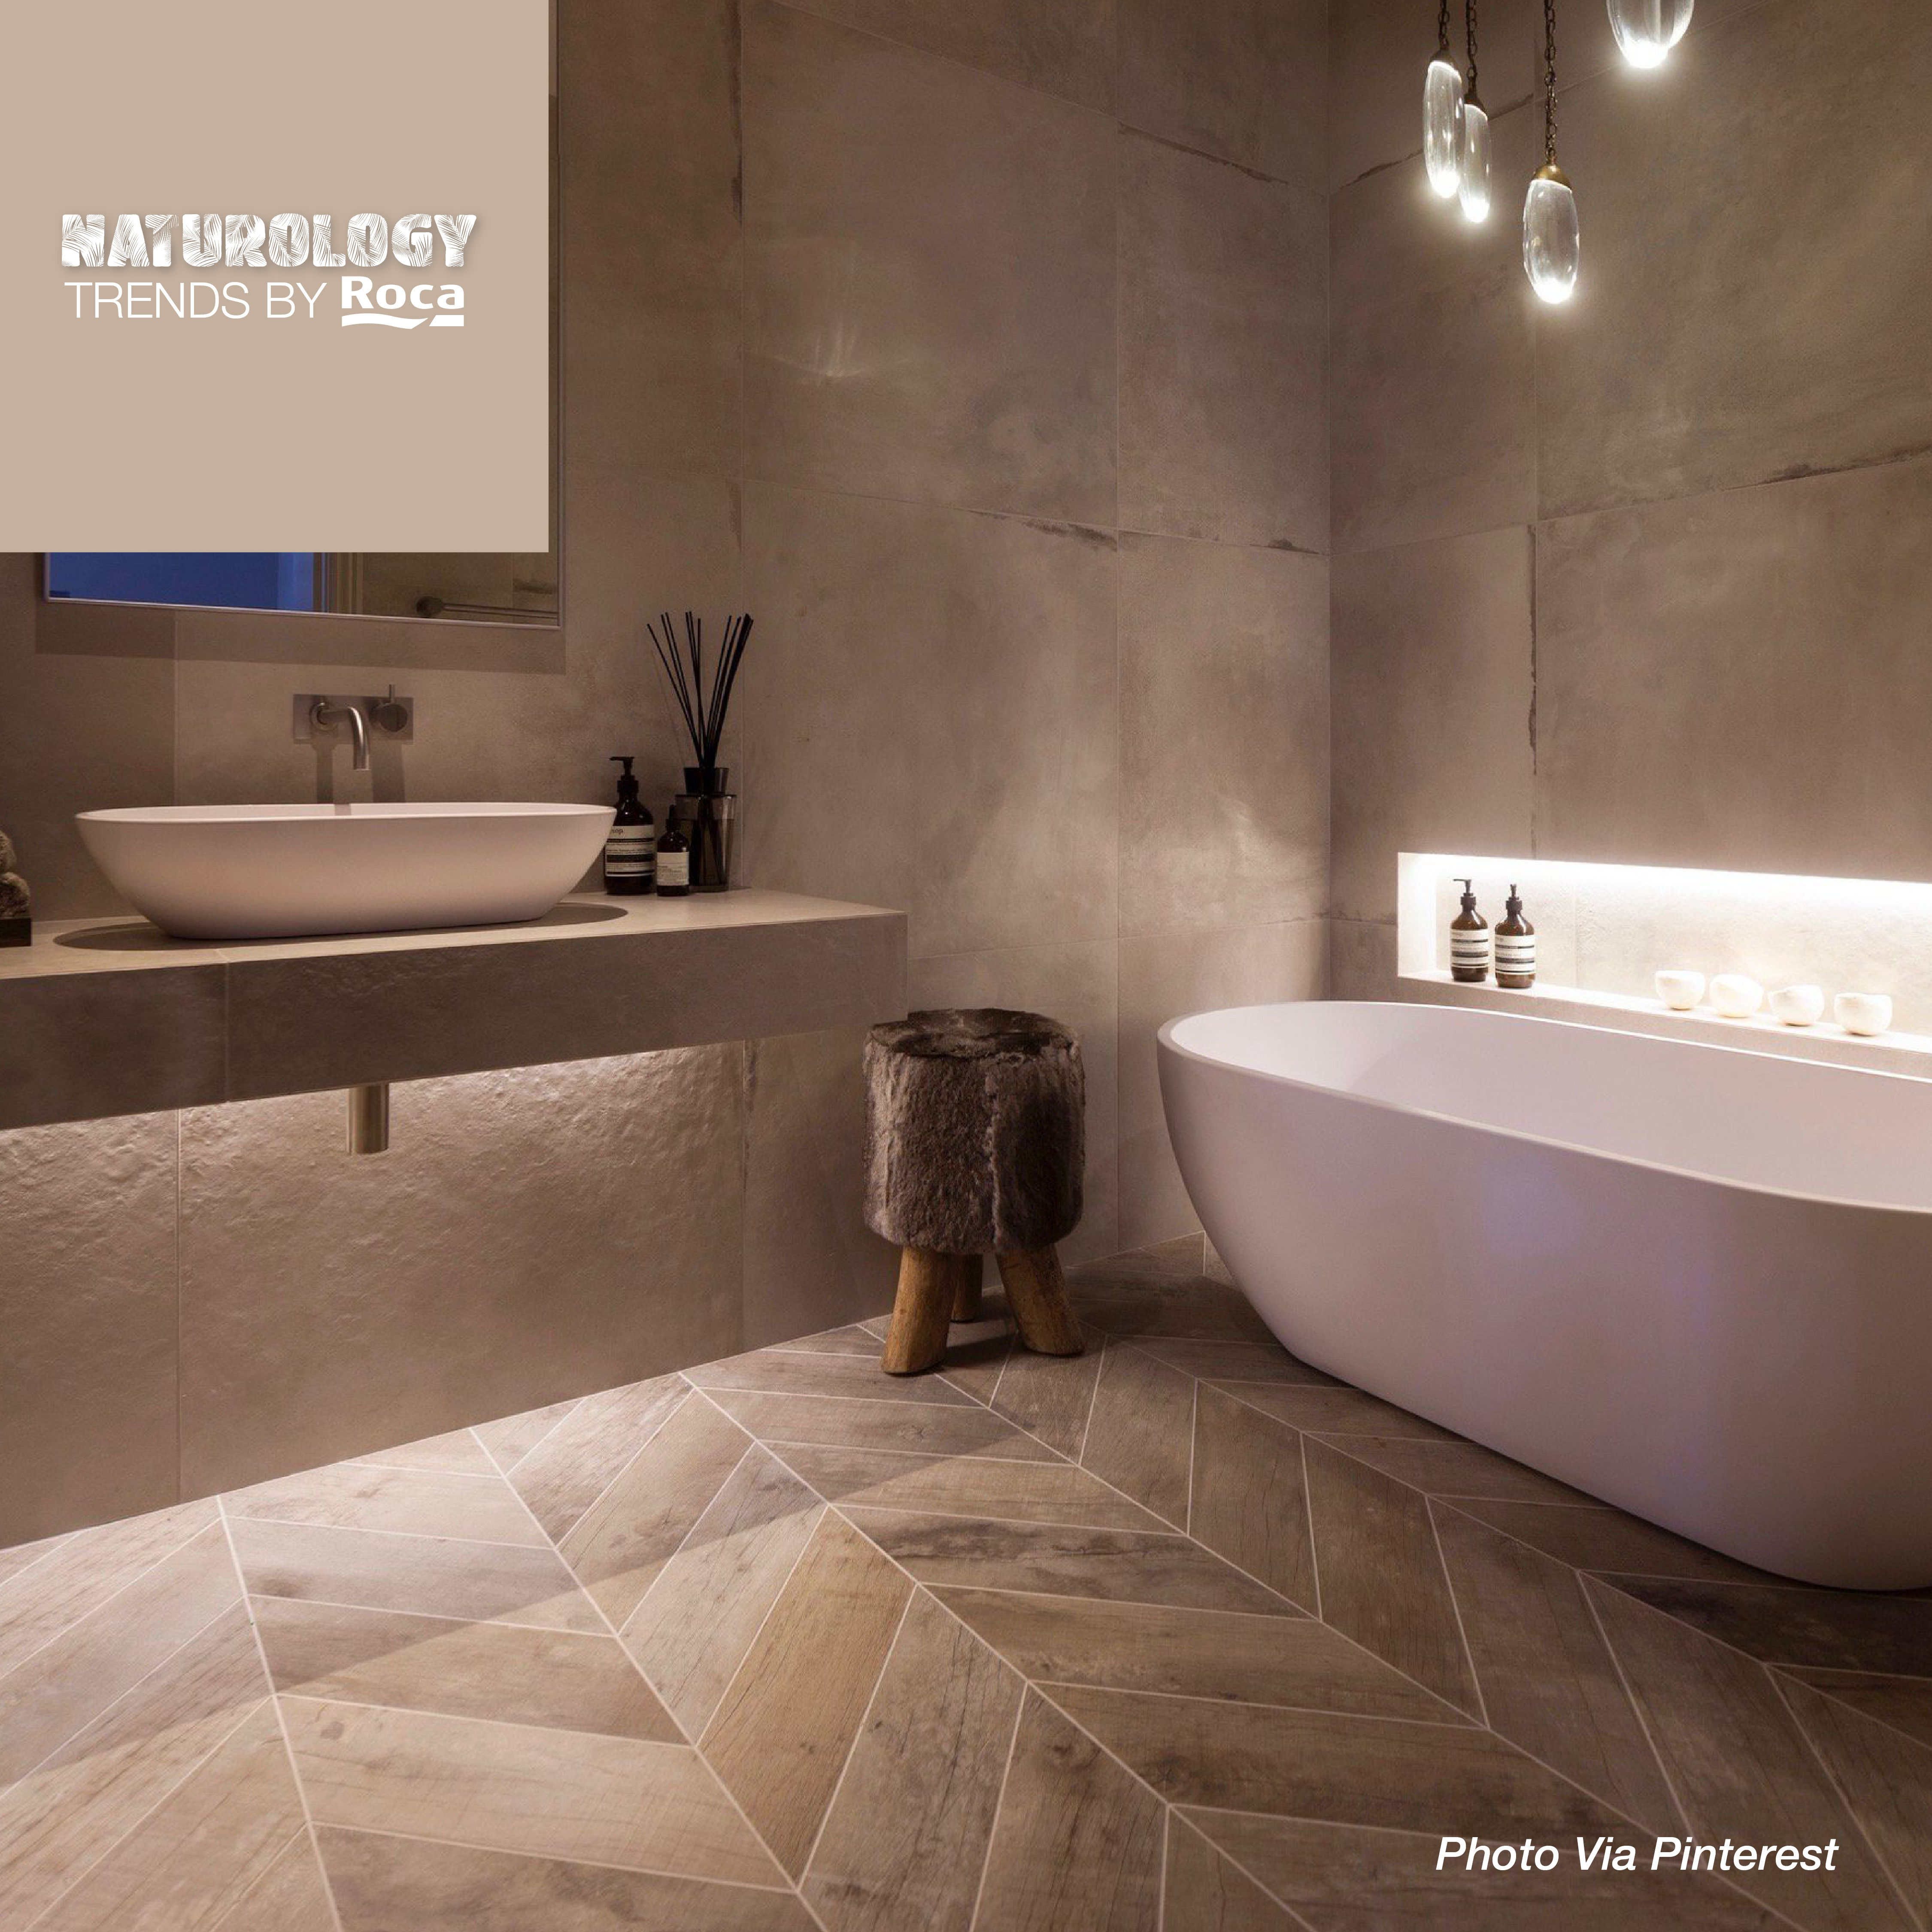 Pin By Roca Tile Usa On Naturology Trends By Roca 3 Spa Bathroom